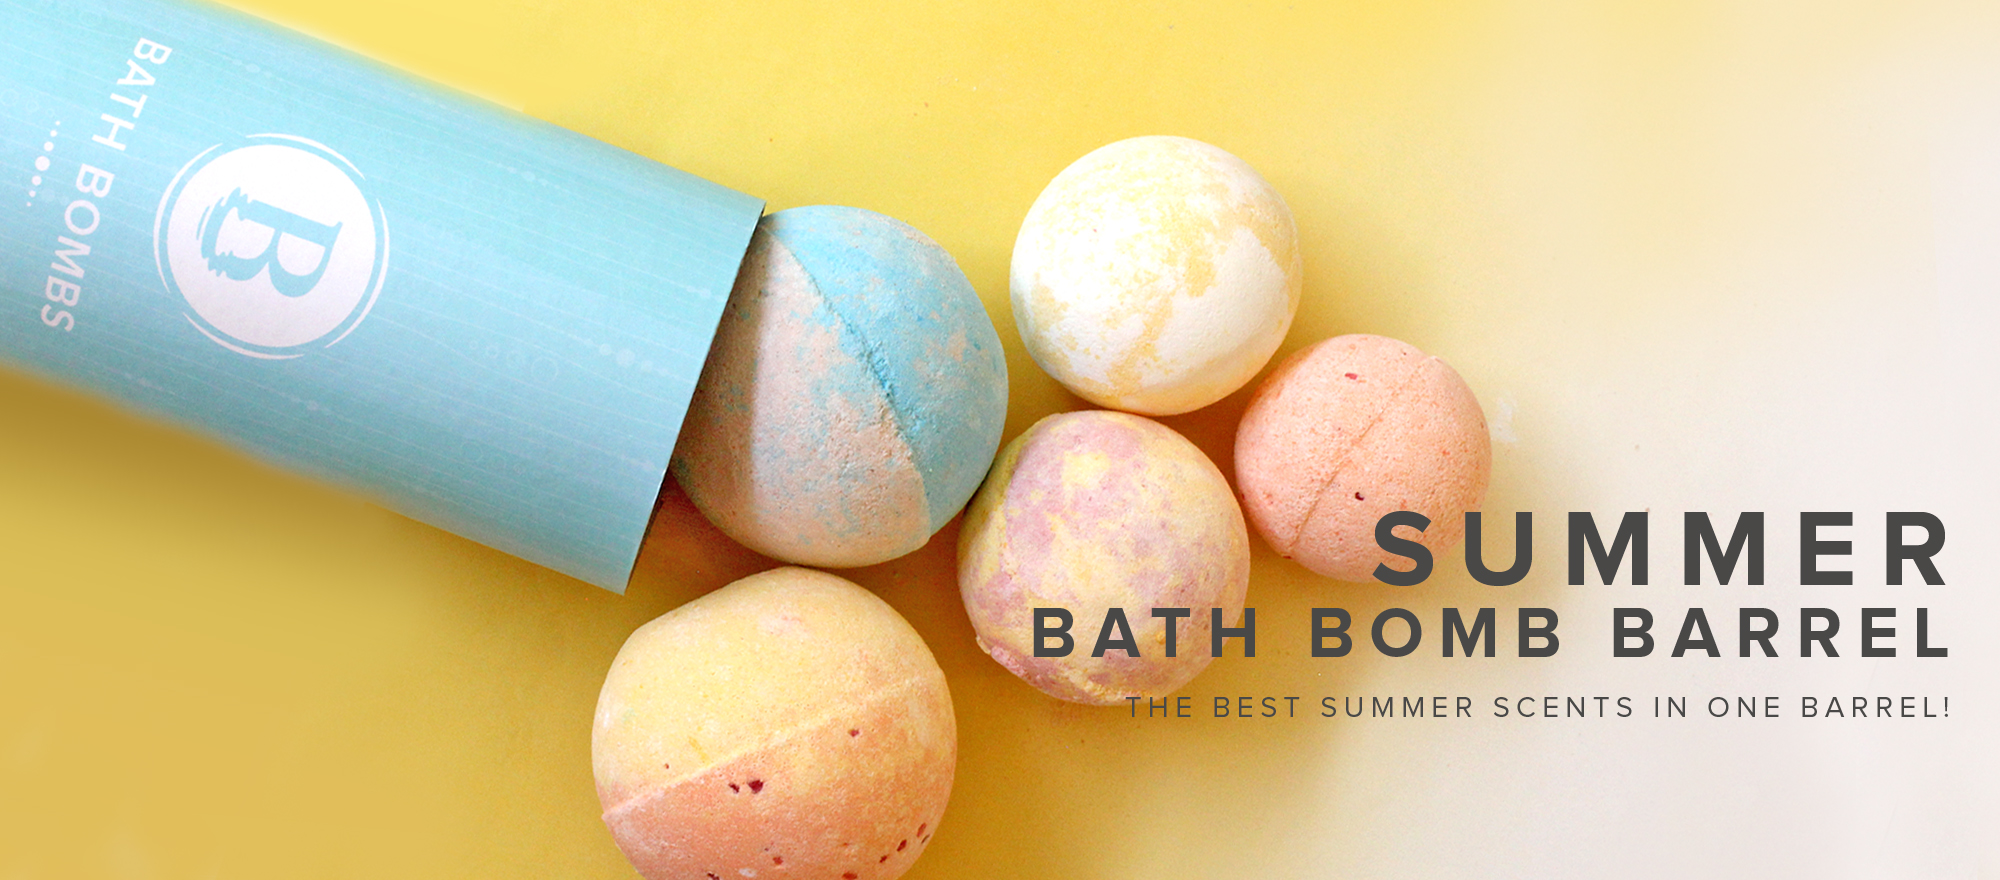 Summer Bath Bomb Barrel